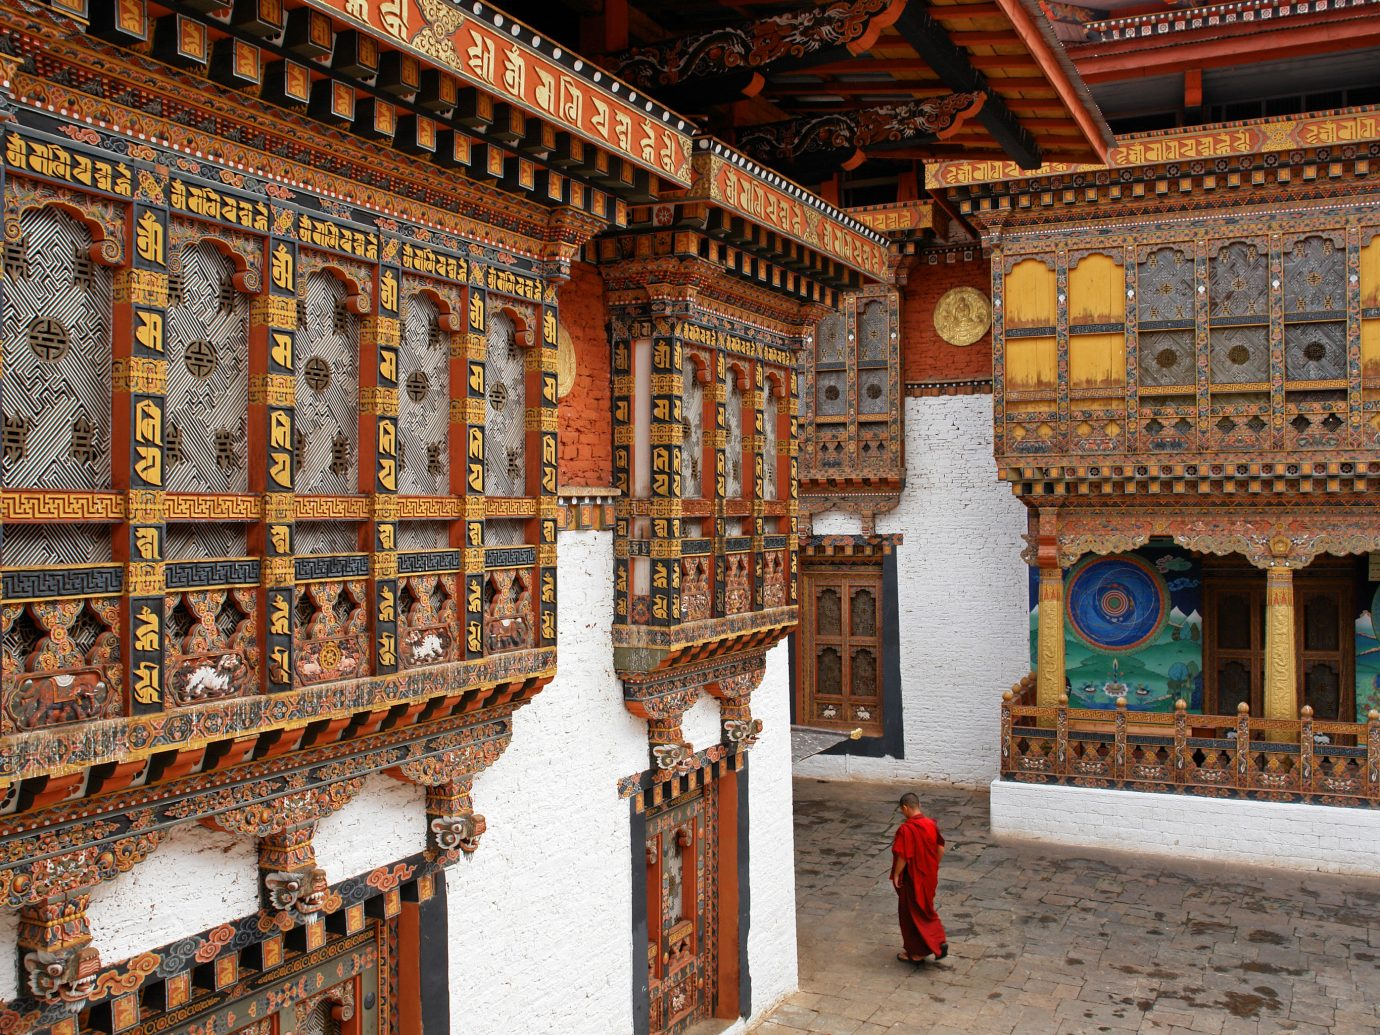 Trip Ideas building hindu temple palace ancient history place of worship temple shrine stall